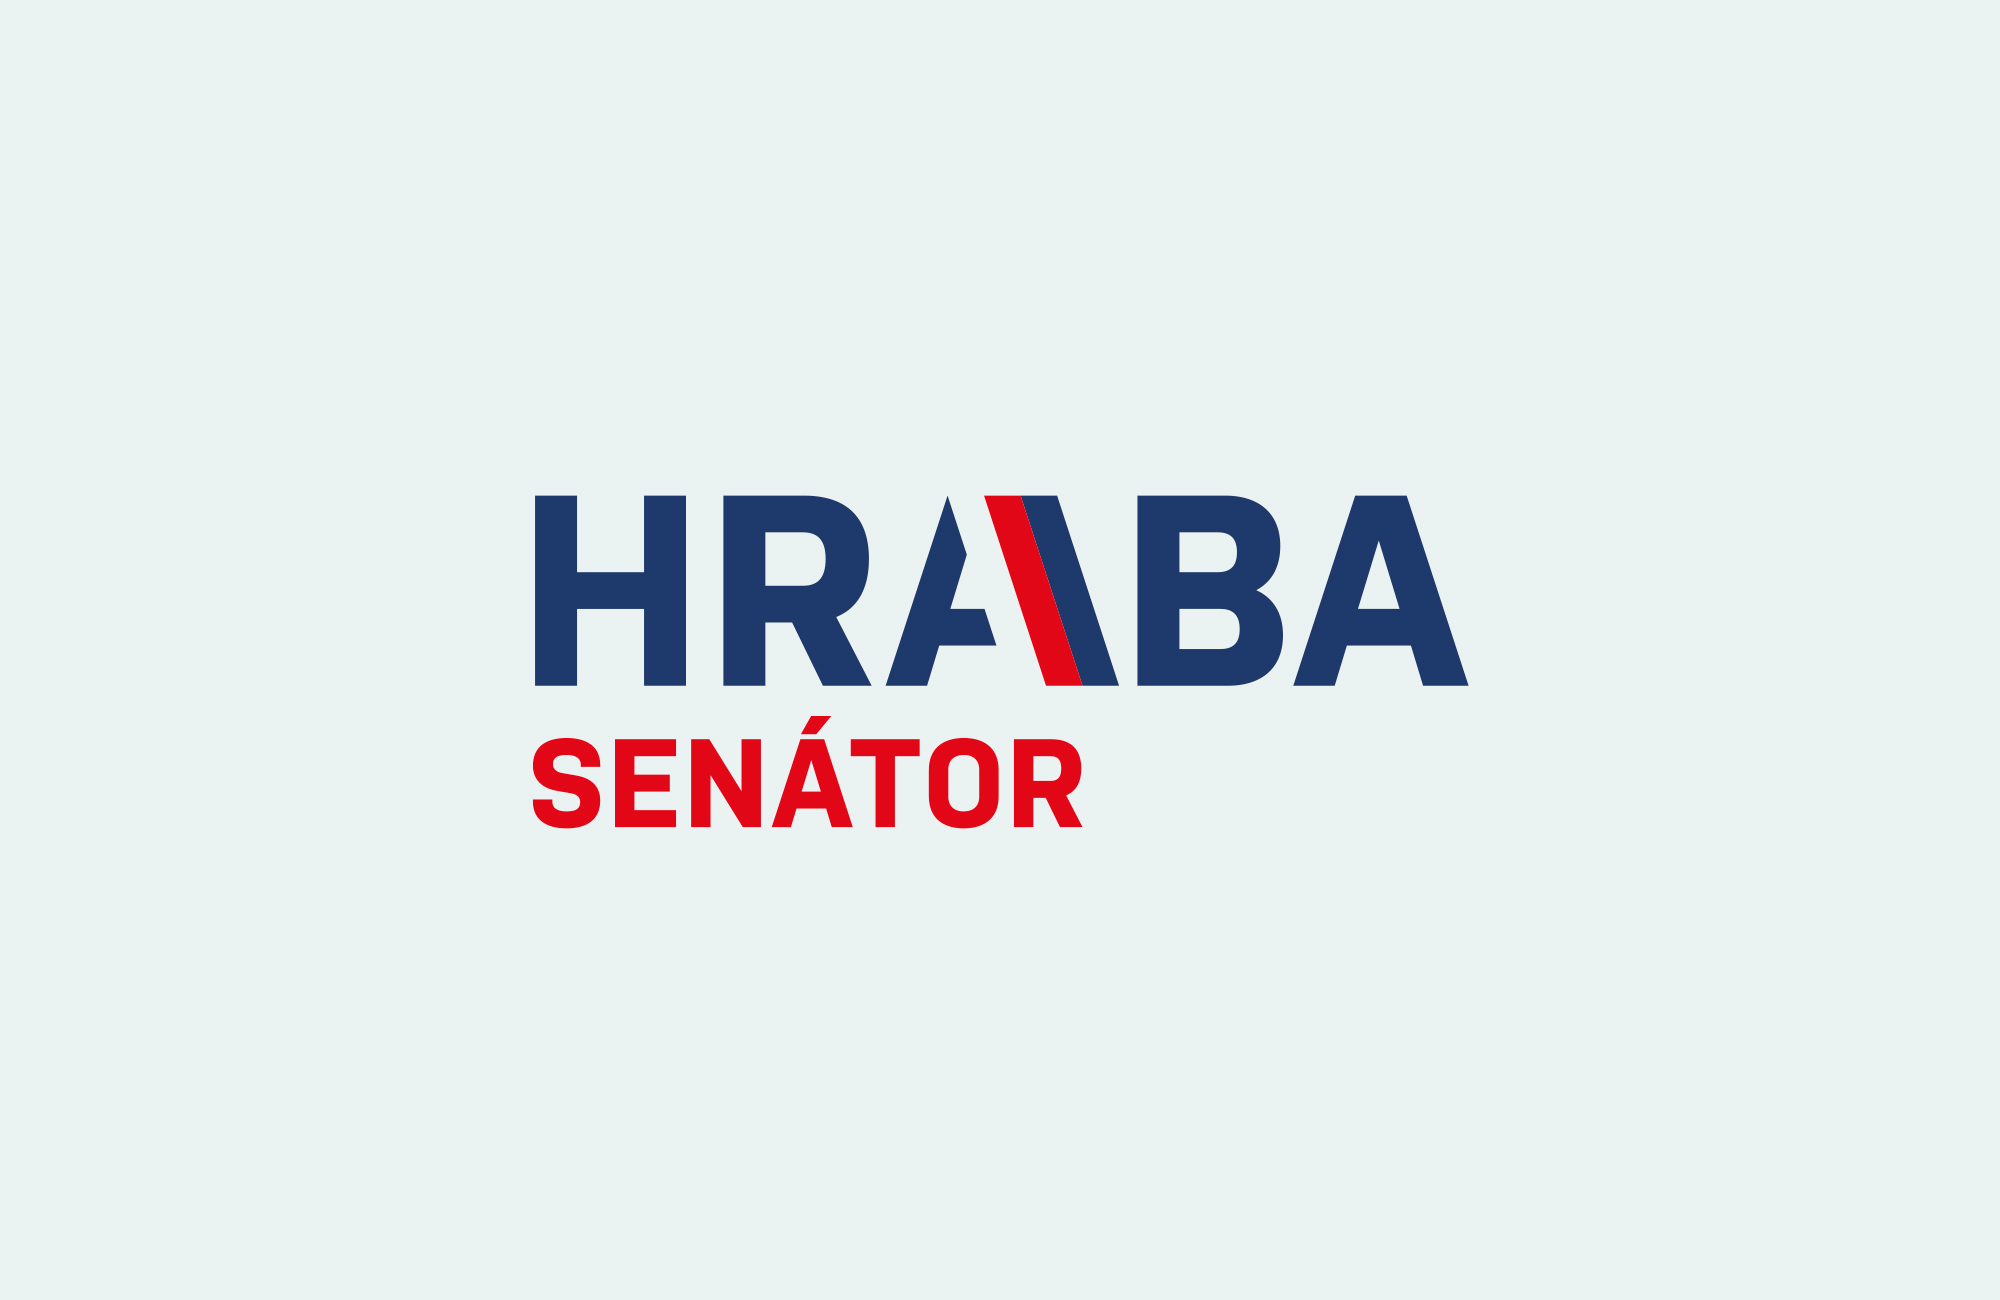 [album/Products_Model_Product/86/HRABA_Senator_logo-4.jpg]